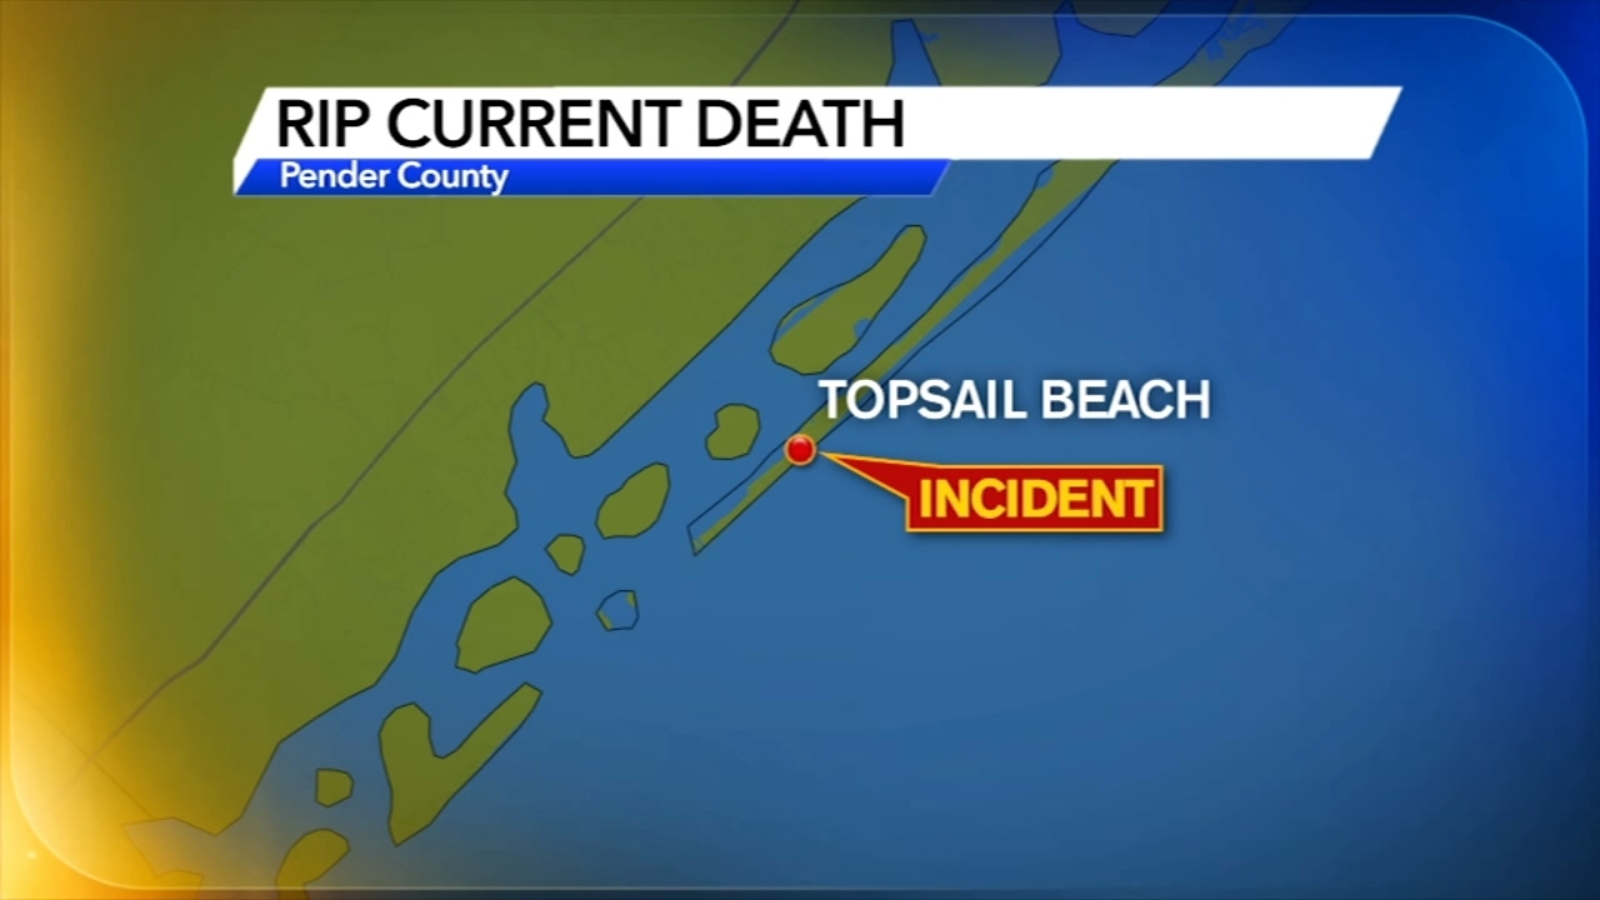 62-year-old man drowns after getting caught in rip current at Topsail Beach